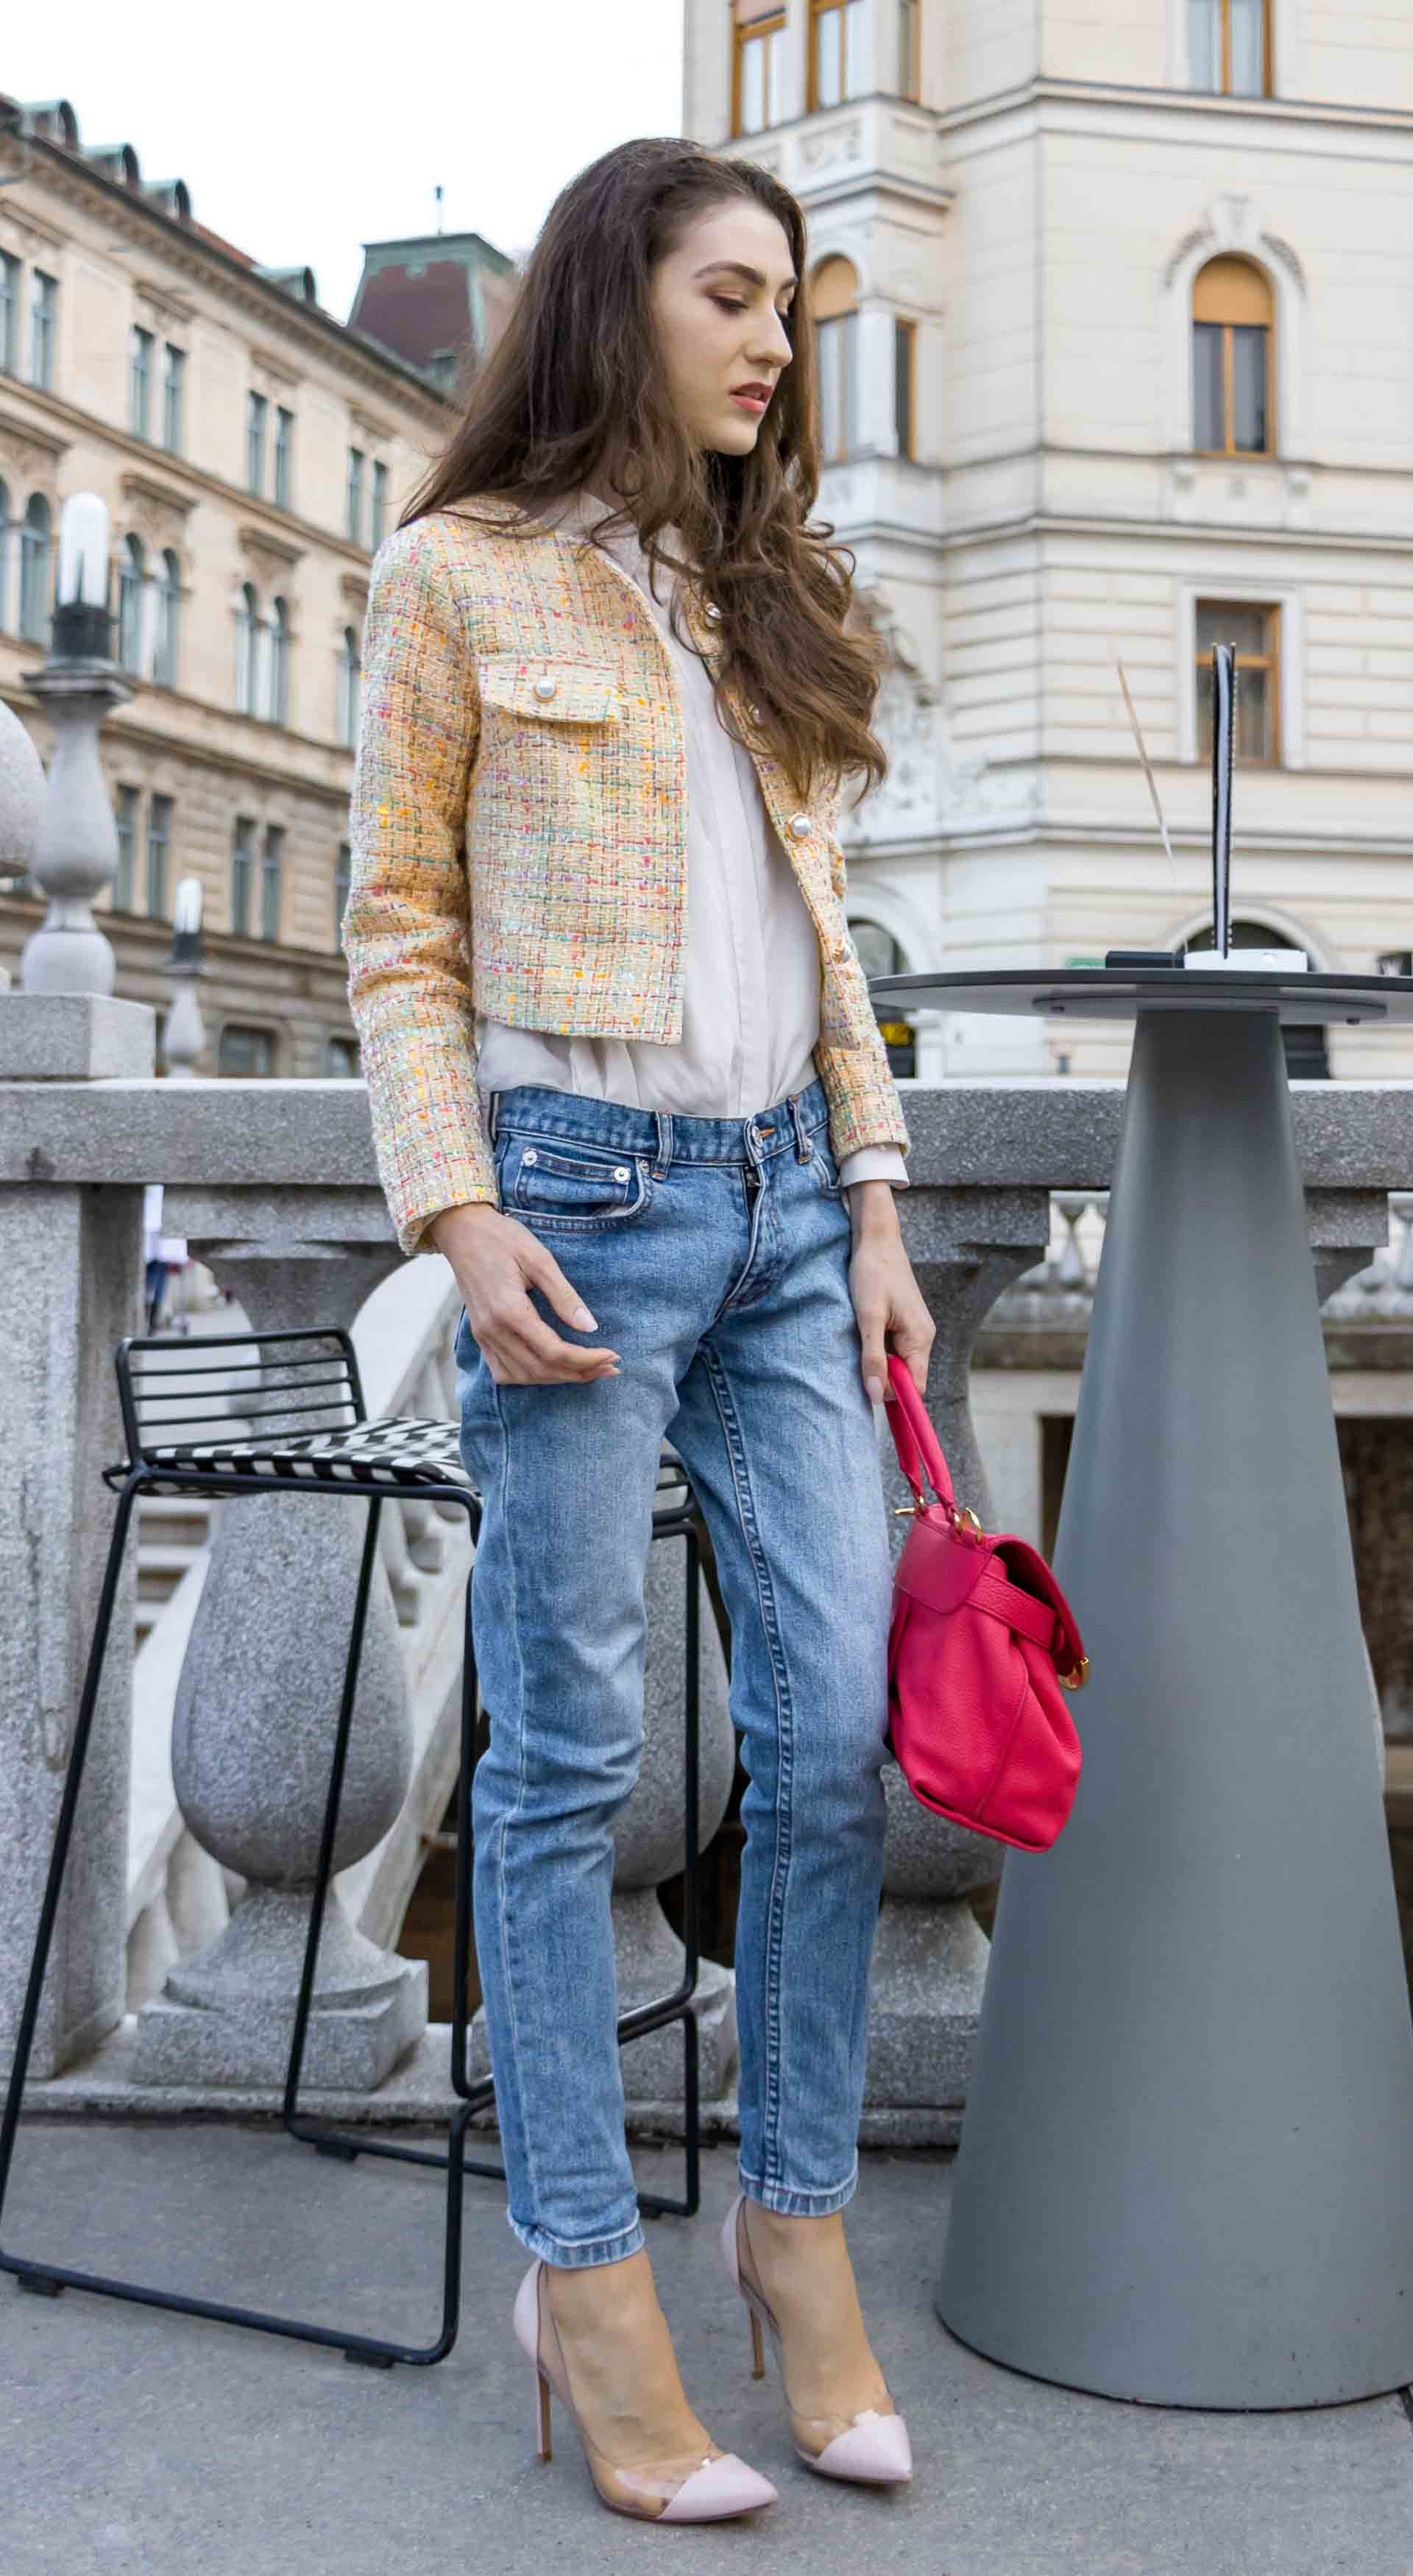 Veronika Lipar Fashion Blogger of Brunette from Wall Street wearing chic casual everyday spring outfit, the yellow tweed jacket from Storets, blue jeans from A.P.C., blush Gianvito Rossi plexi pumps, pink top handle bag and organza white shirt for drink date